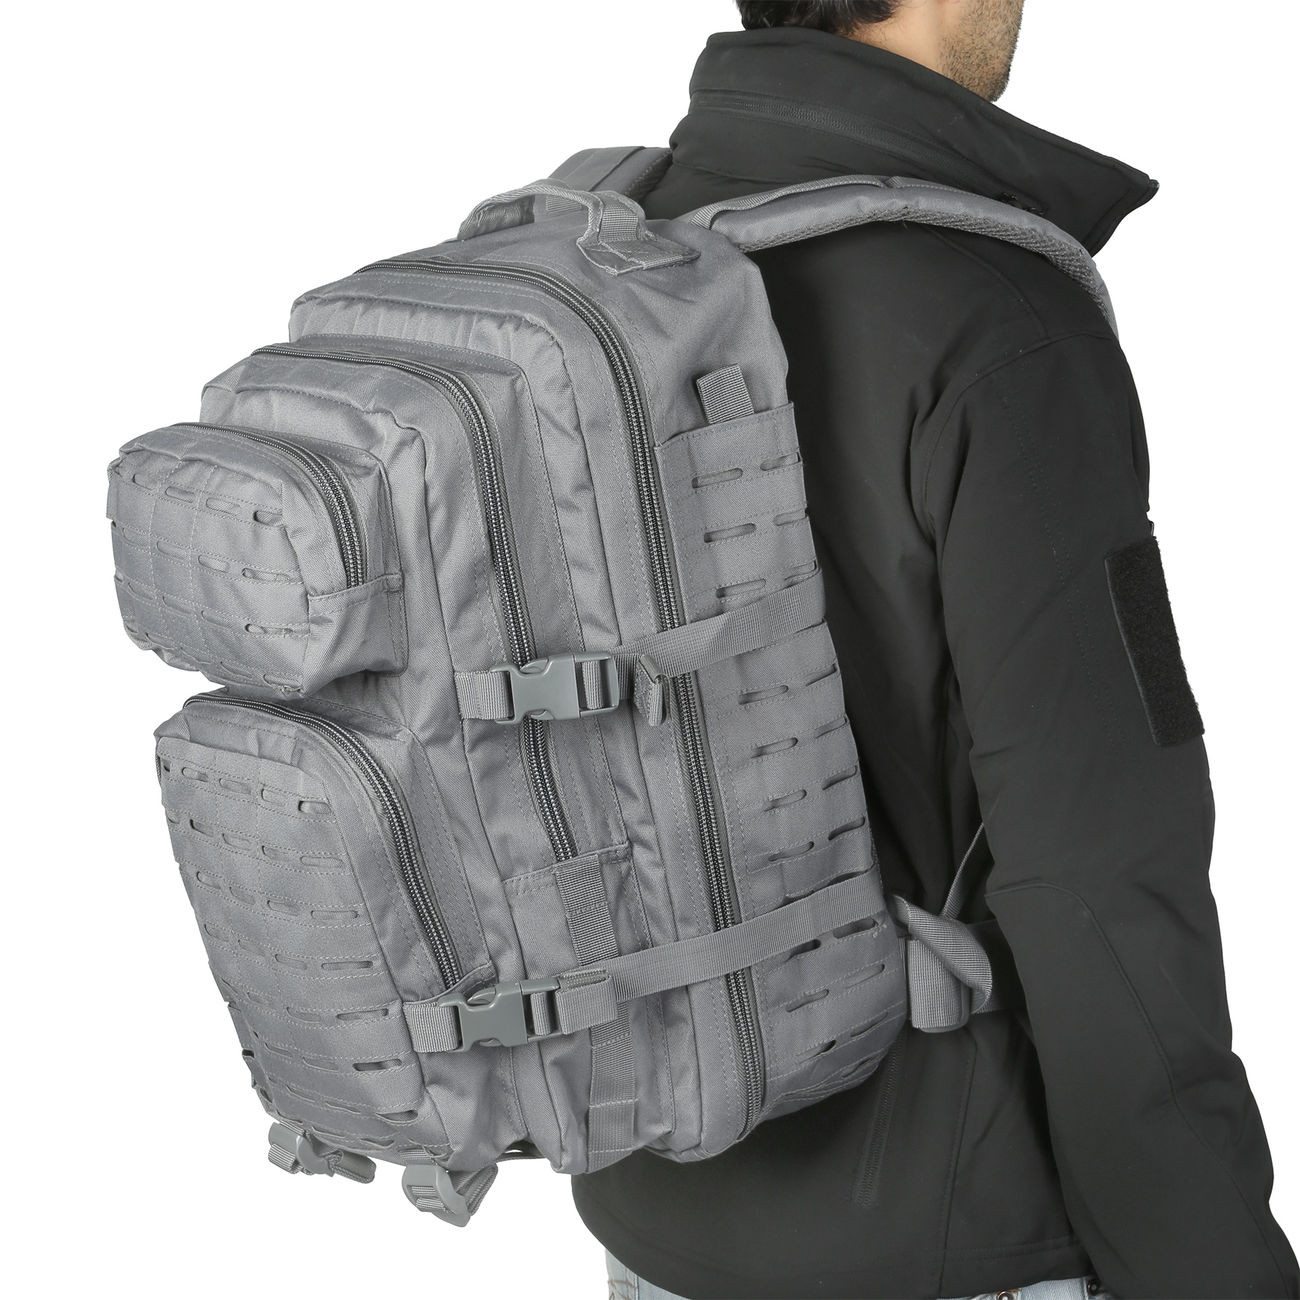 Mil-Tec Rucksack US Assault Pack Laser Cut large 36L Urban grey 5